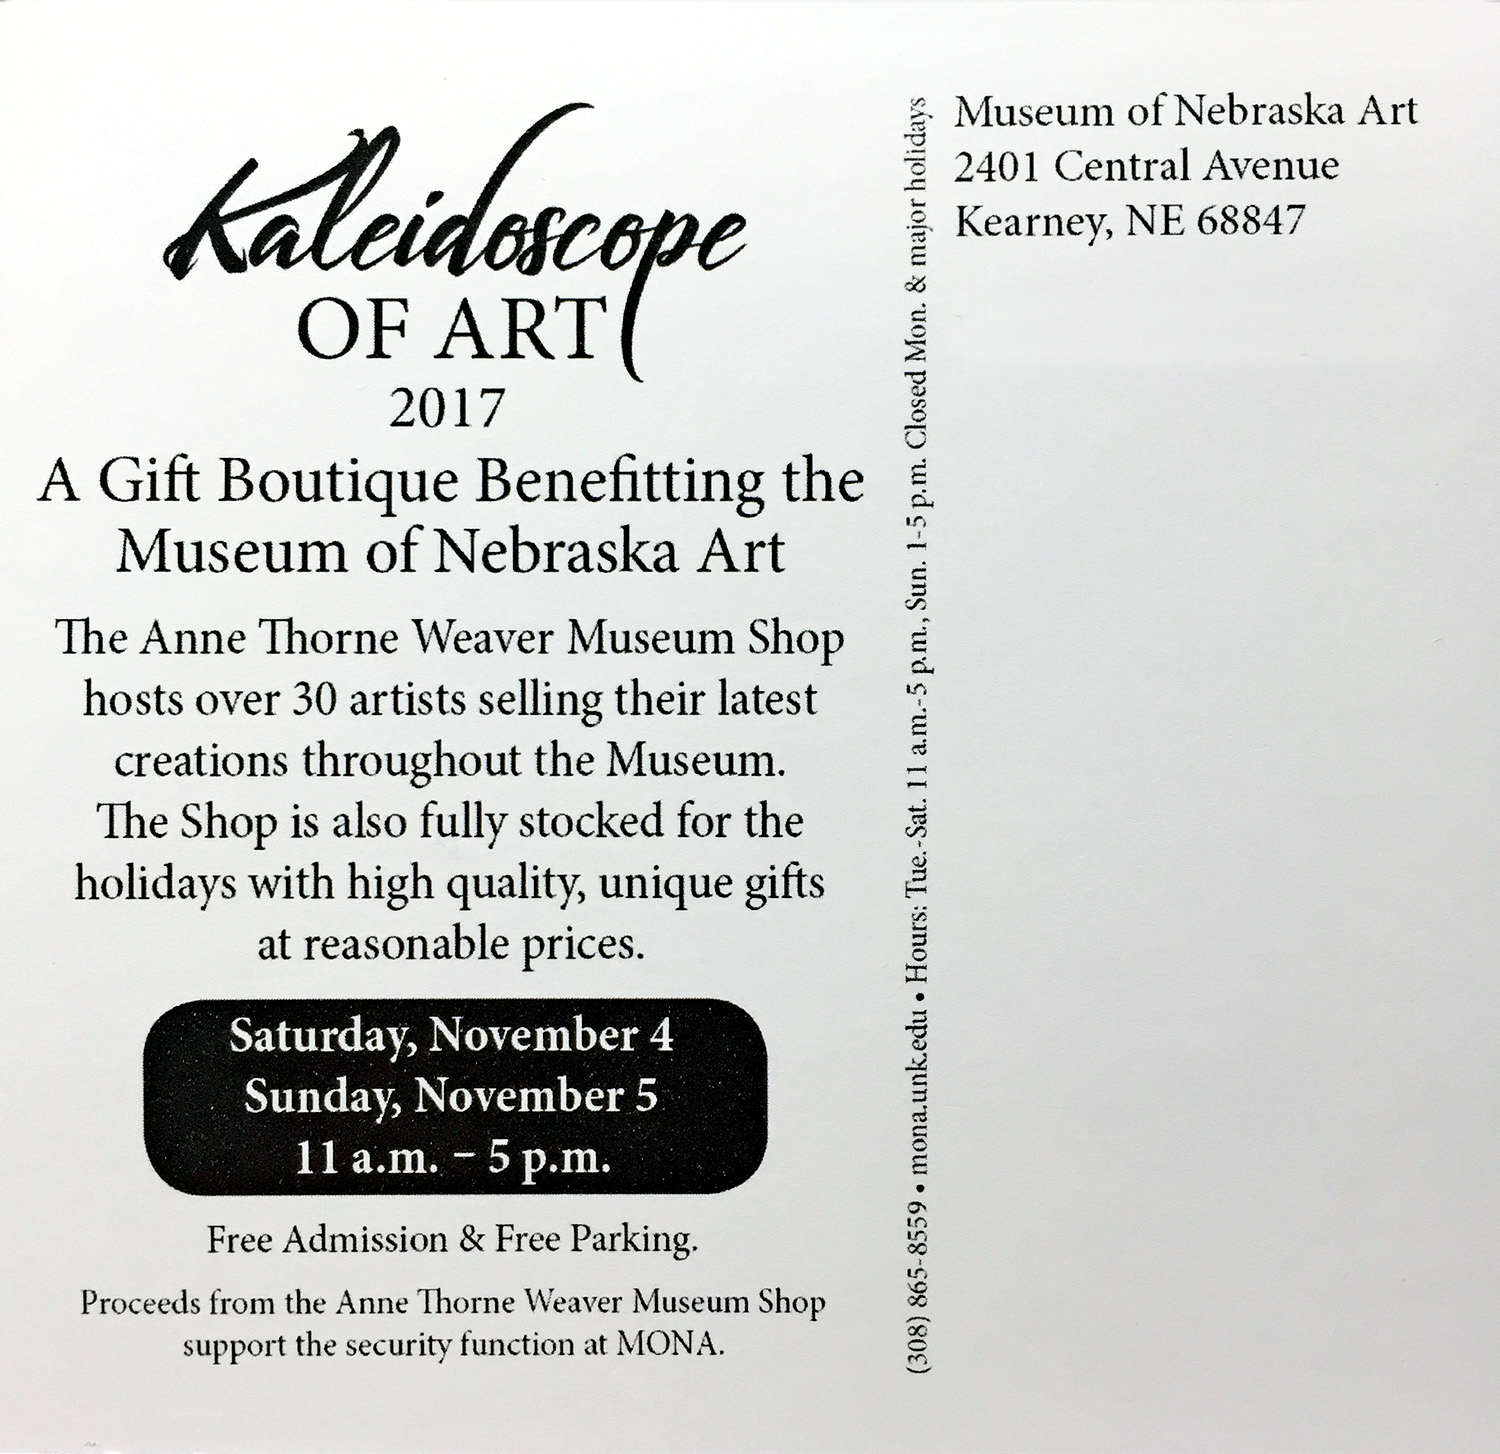 Kaleidoscope 2017 at MONA in Kearney, November 4-5